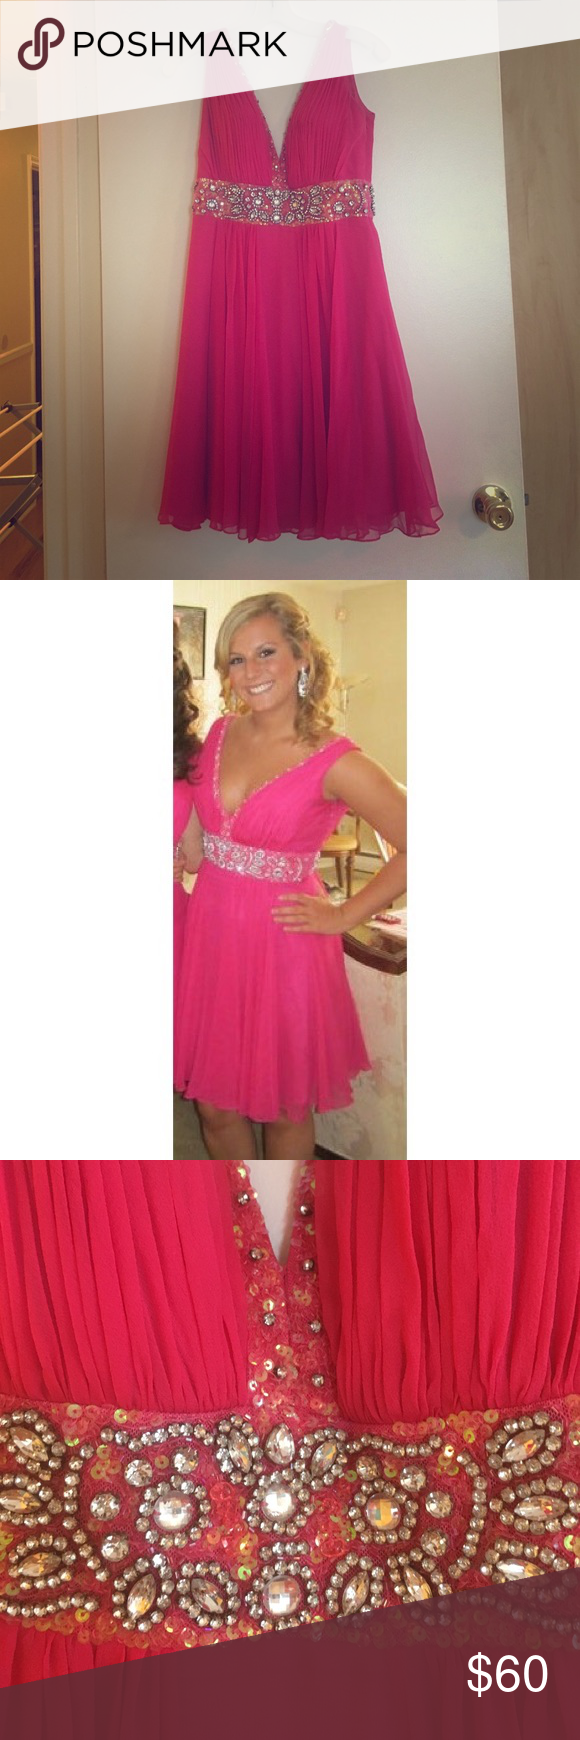 Pink dress to wear to a wedding  Beautifully embroidered hot pink dress  Hot pink dresses Jovani